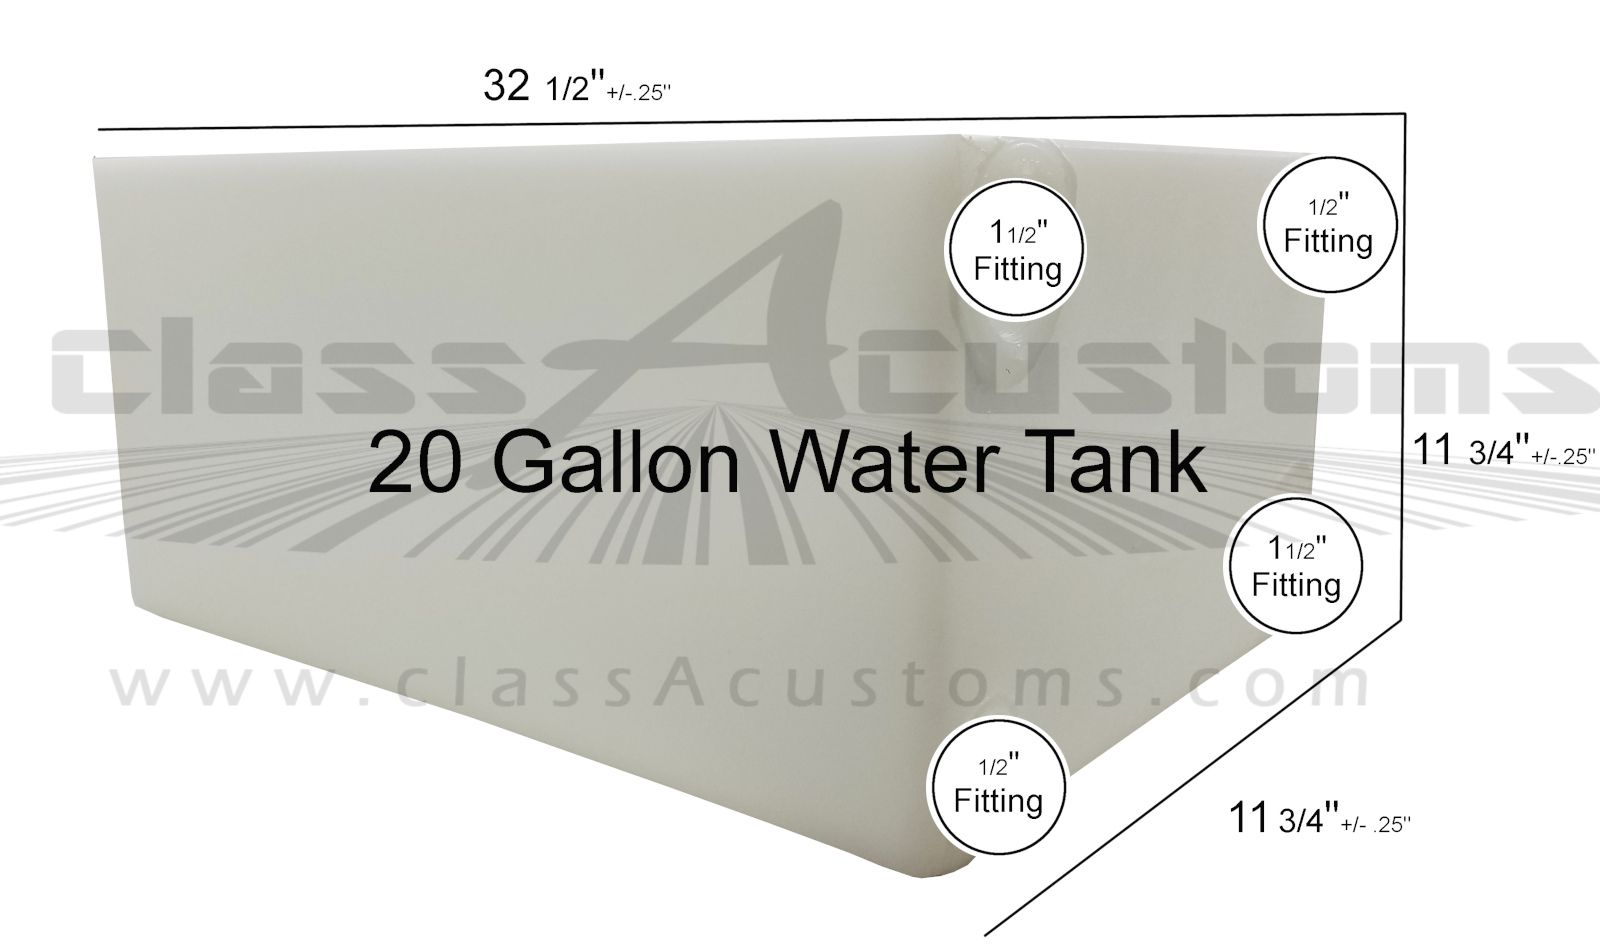 20 Gallon Fresh Gray Water Holding Tank Class A Customs Concession Trailer Water Tanks Classacustoms Mobile Food Truck Bus Water Tank Tank Mobile Food Trucks